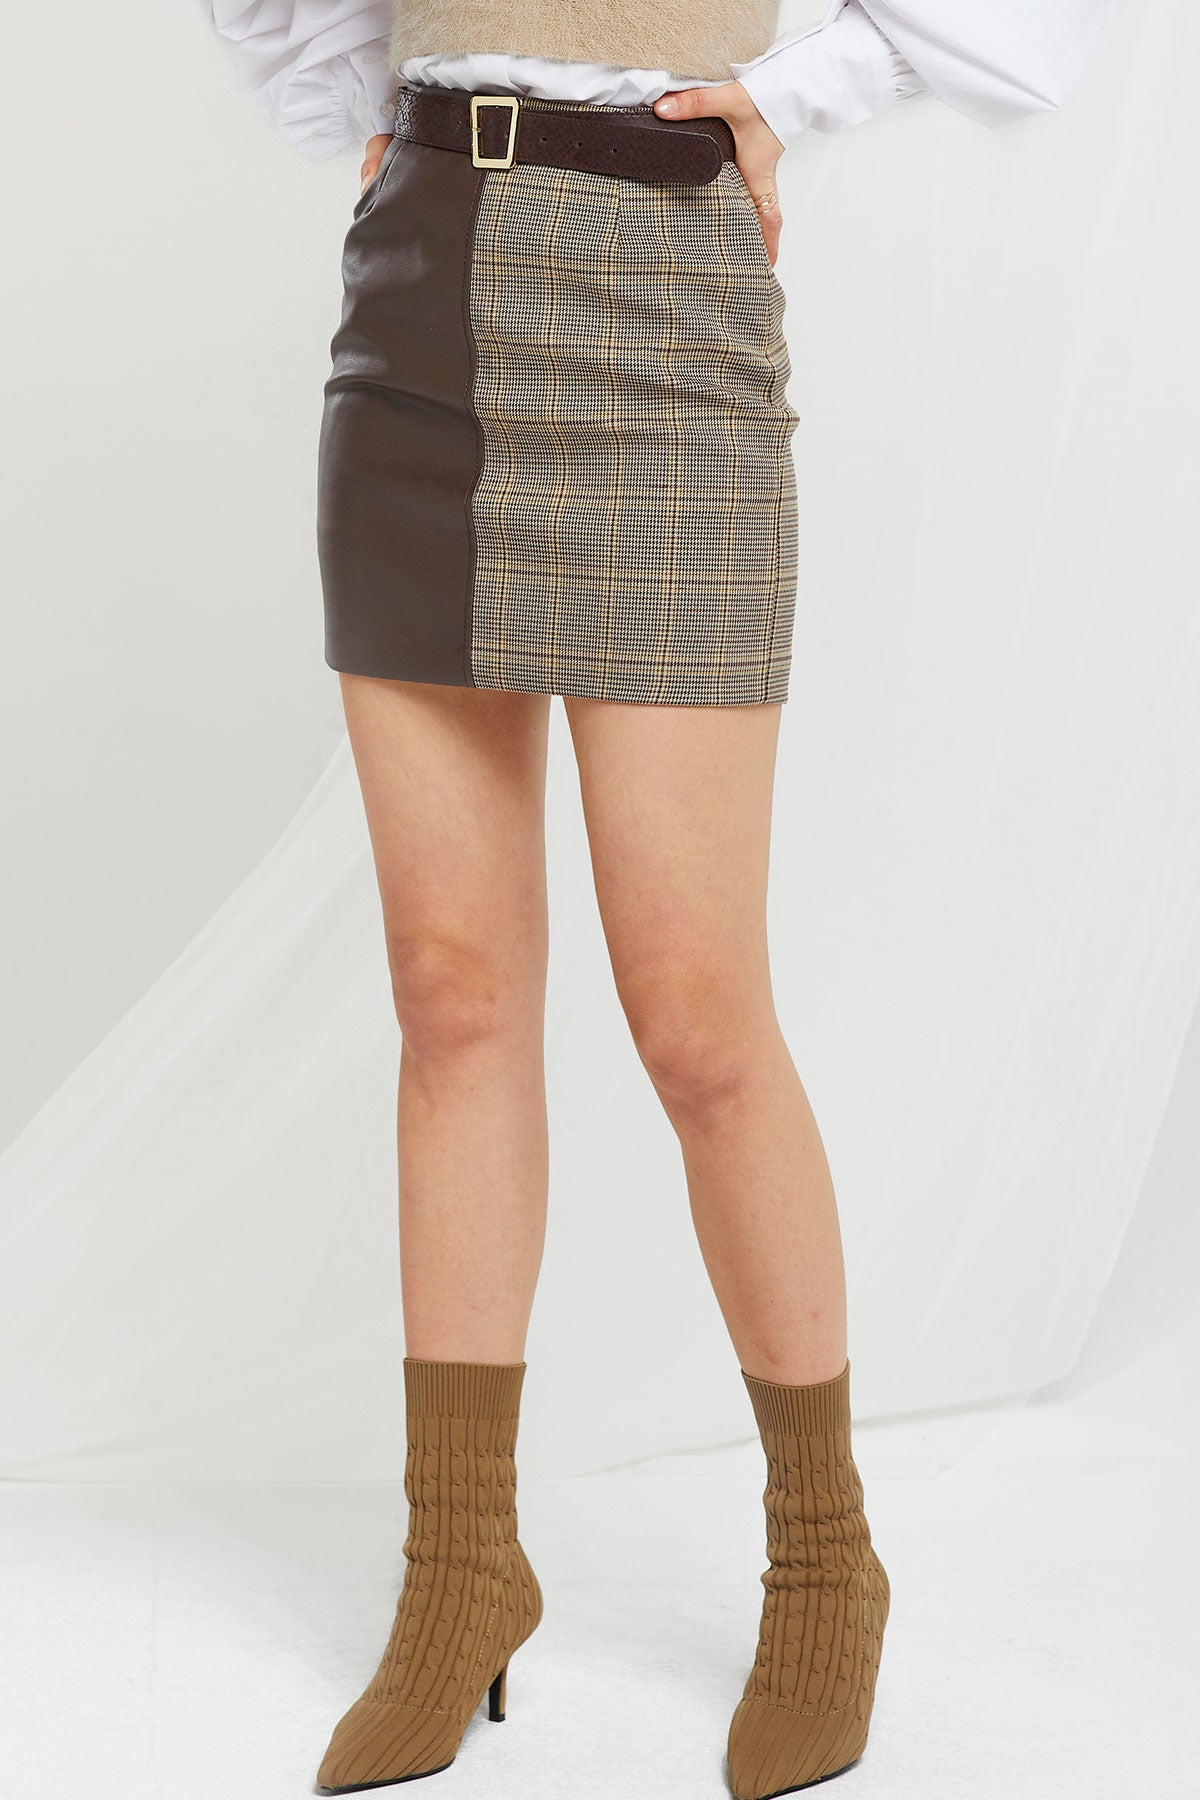 Cardi Plaid Pleather Skirt by Storets